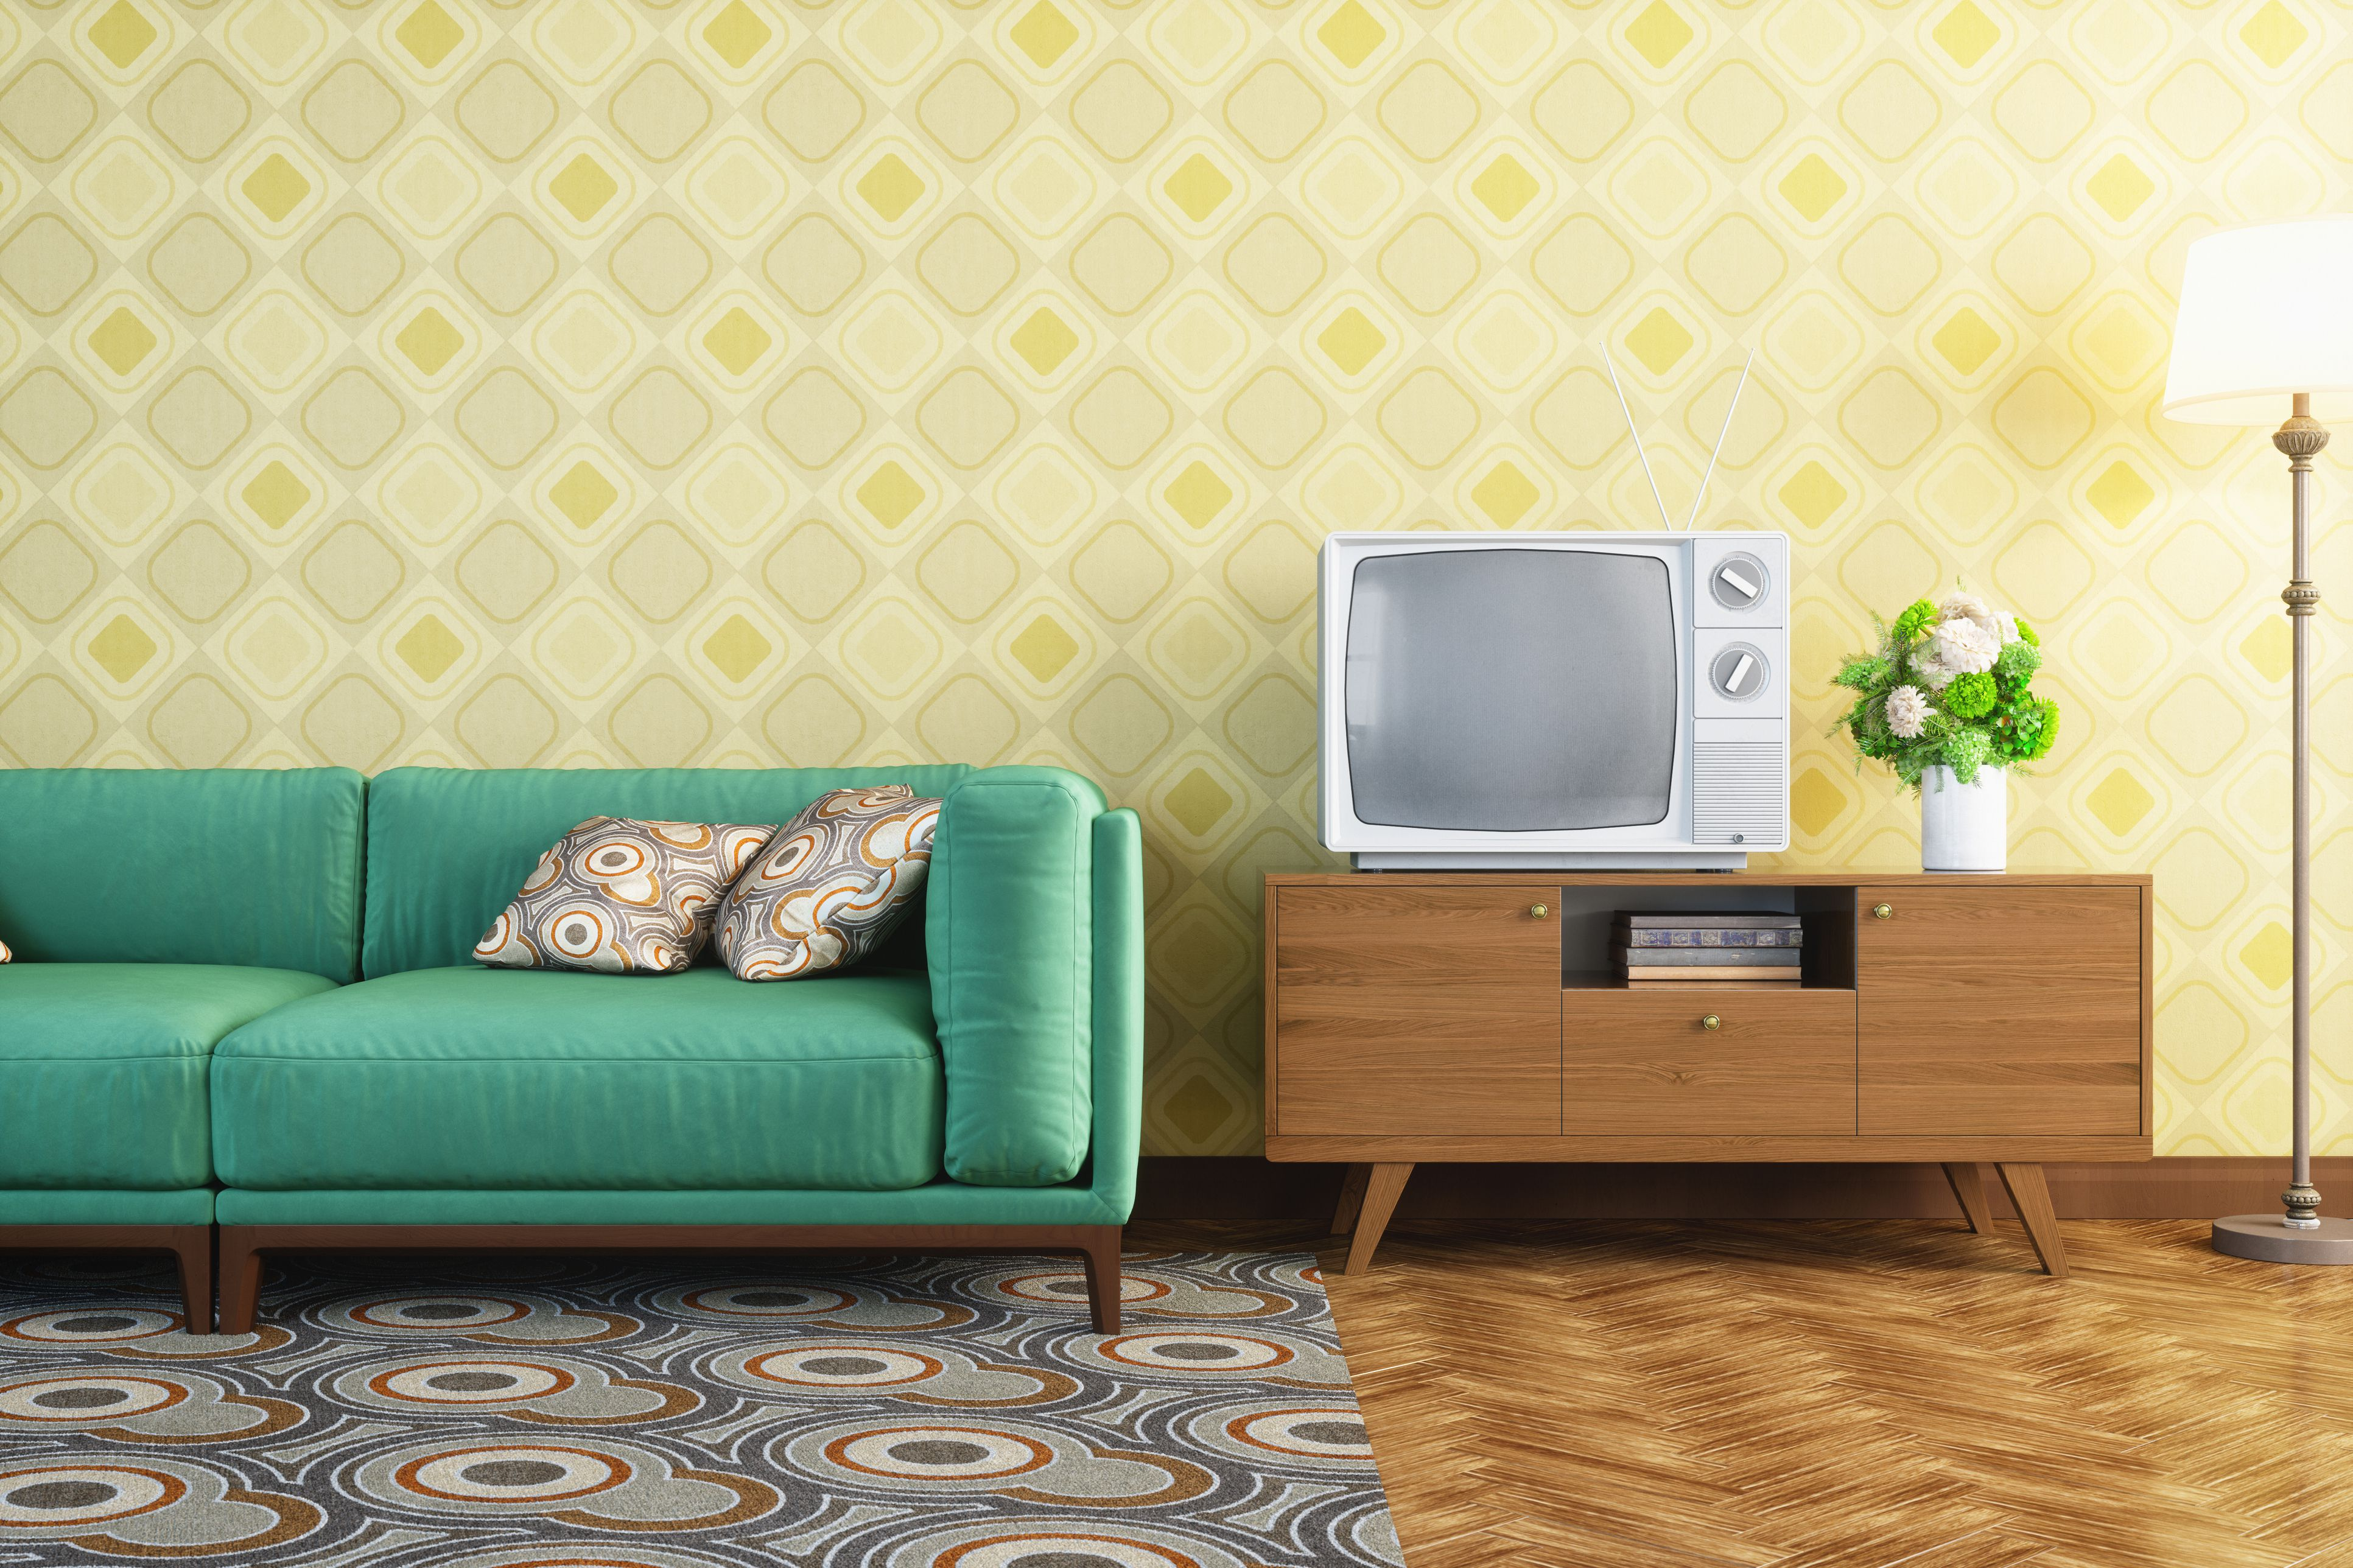 7 Tips For Amazing Retro Style Decorating